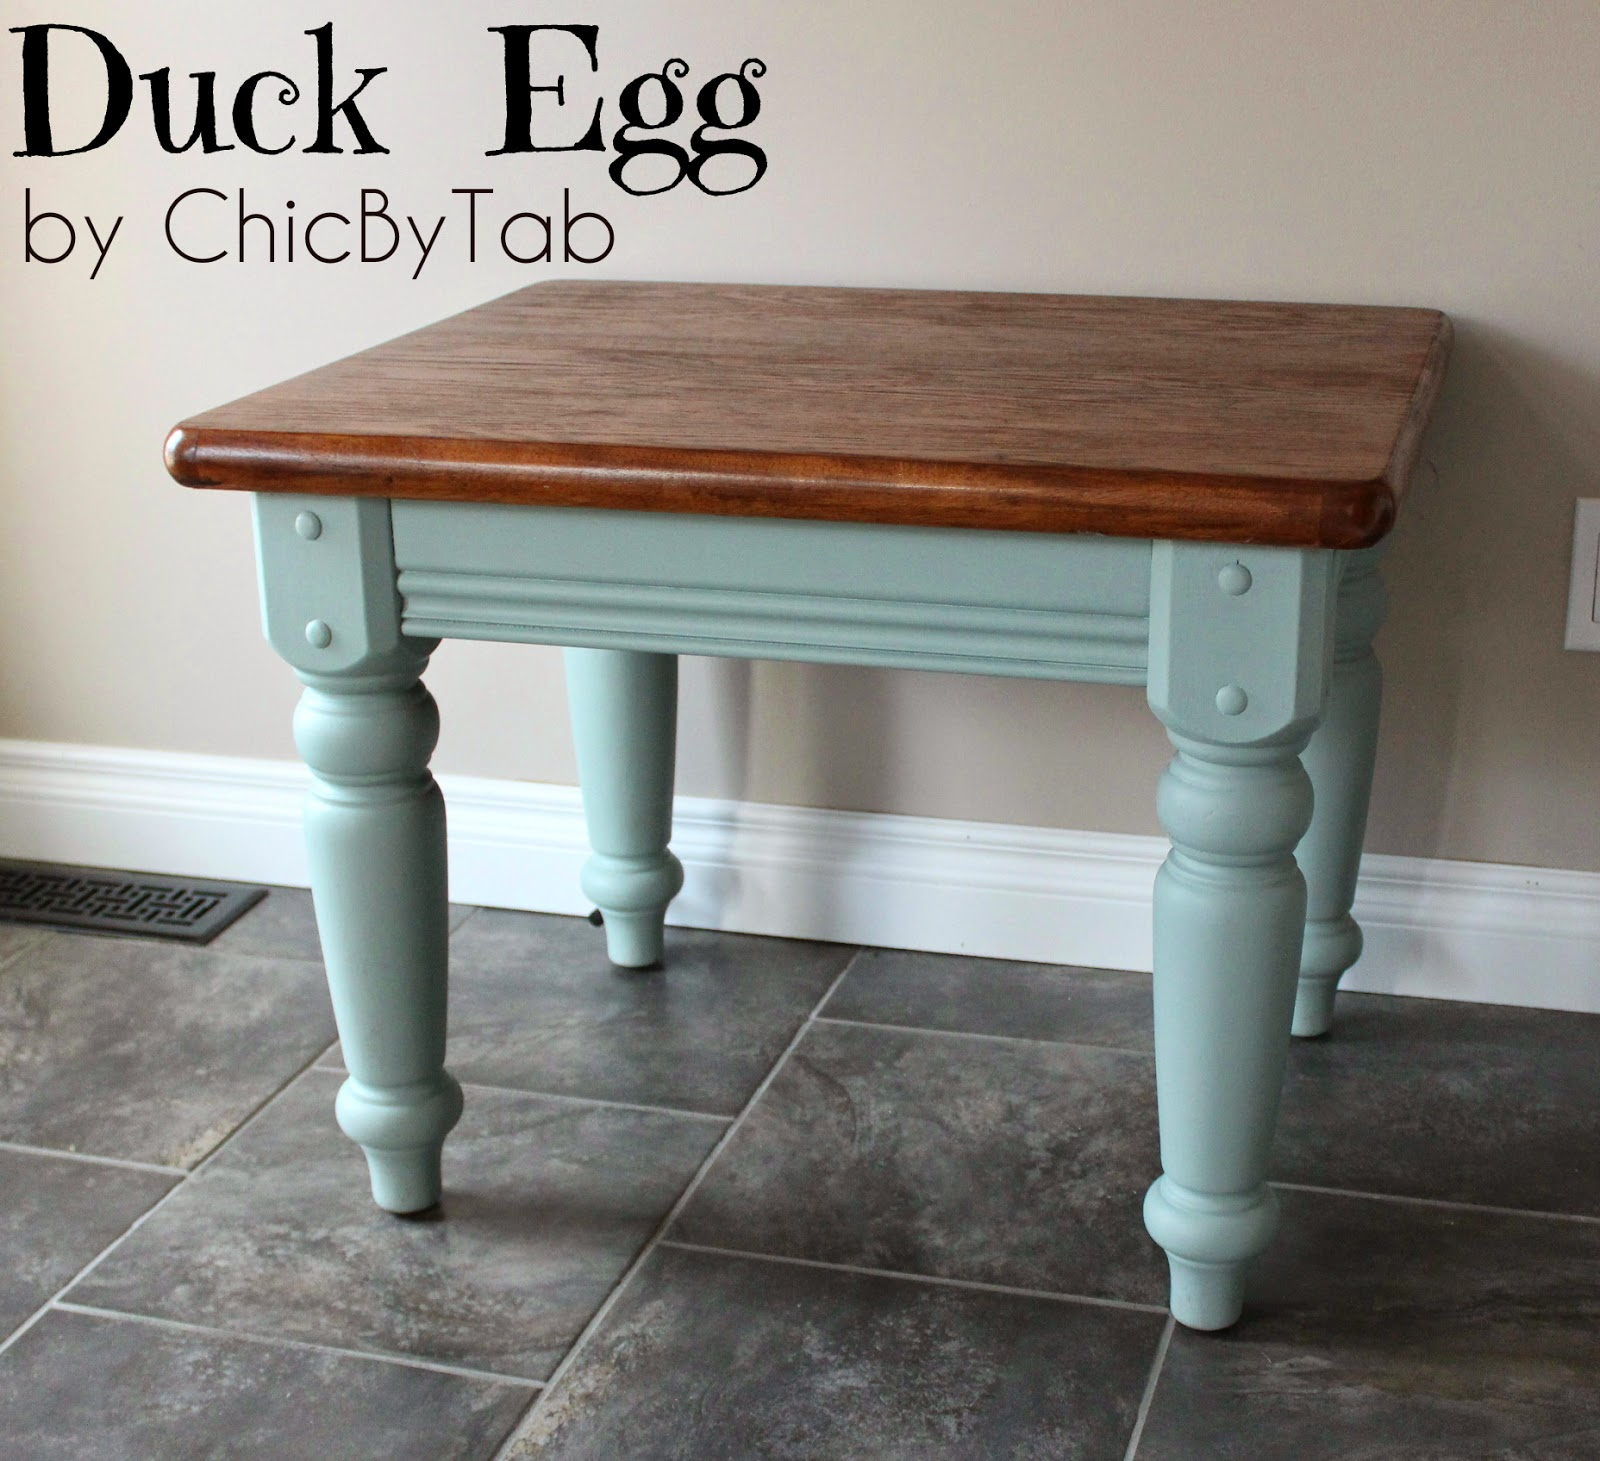 Chicbytab Coffee Table Make Over 2